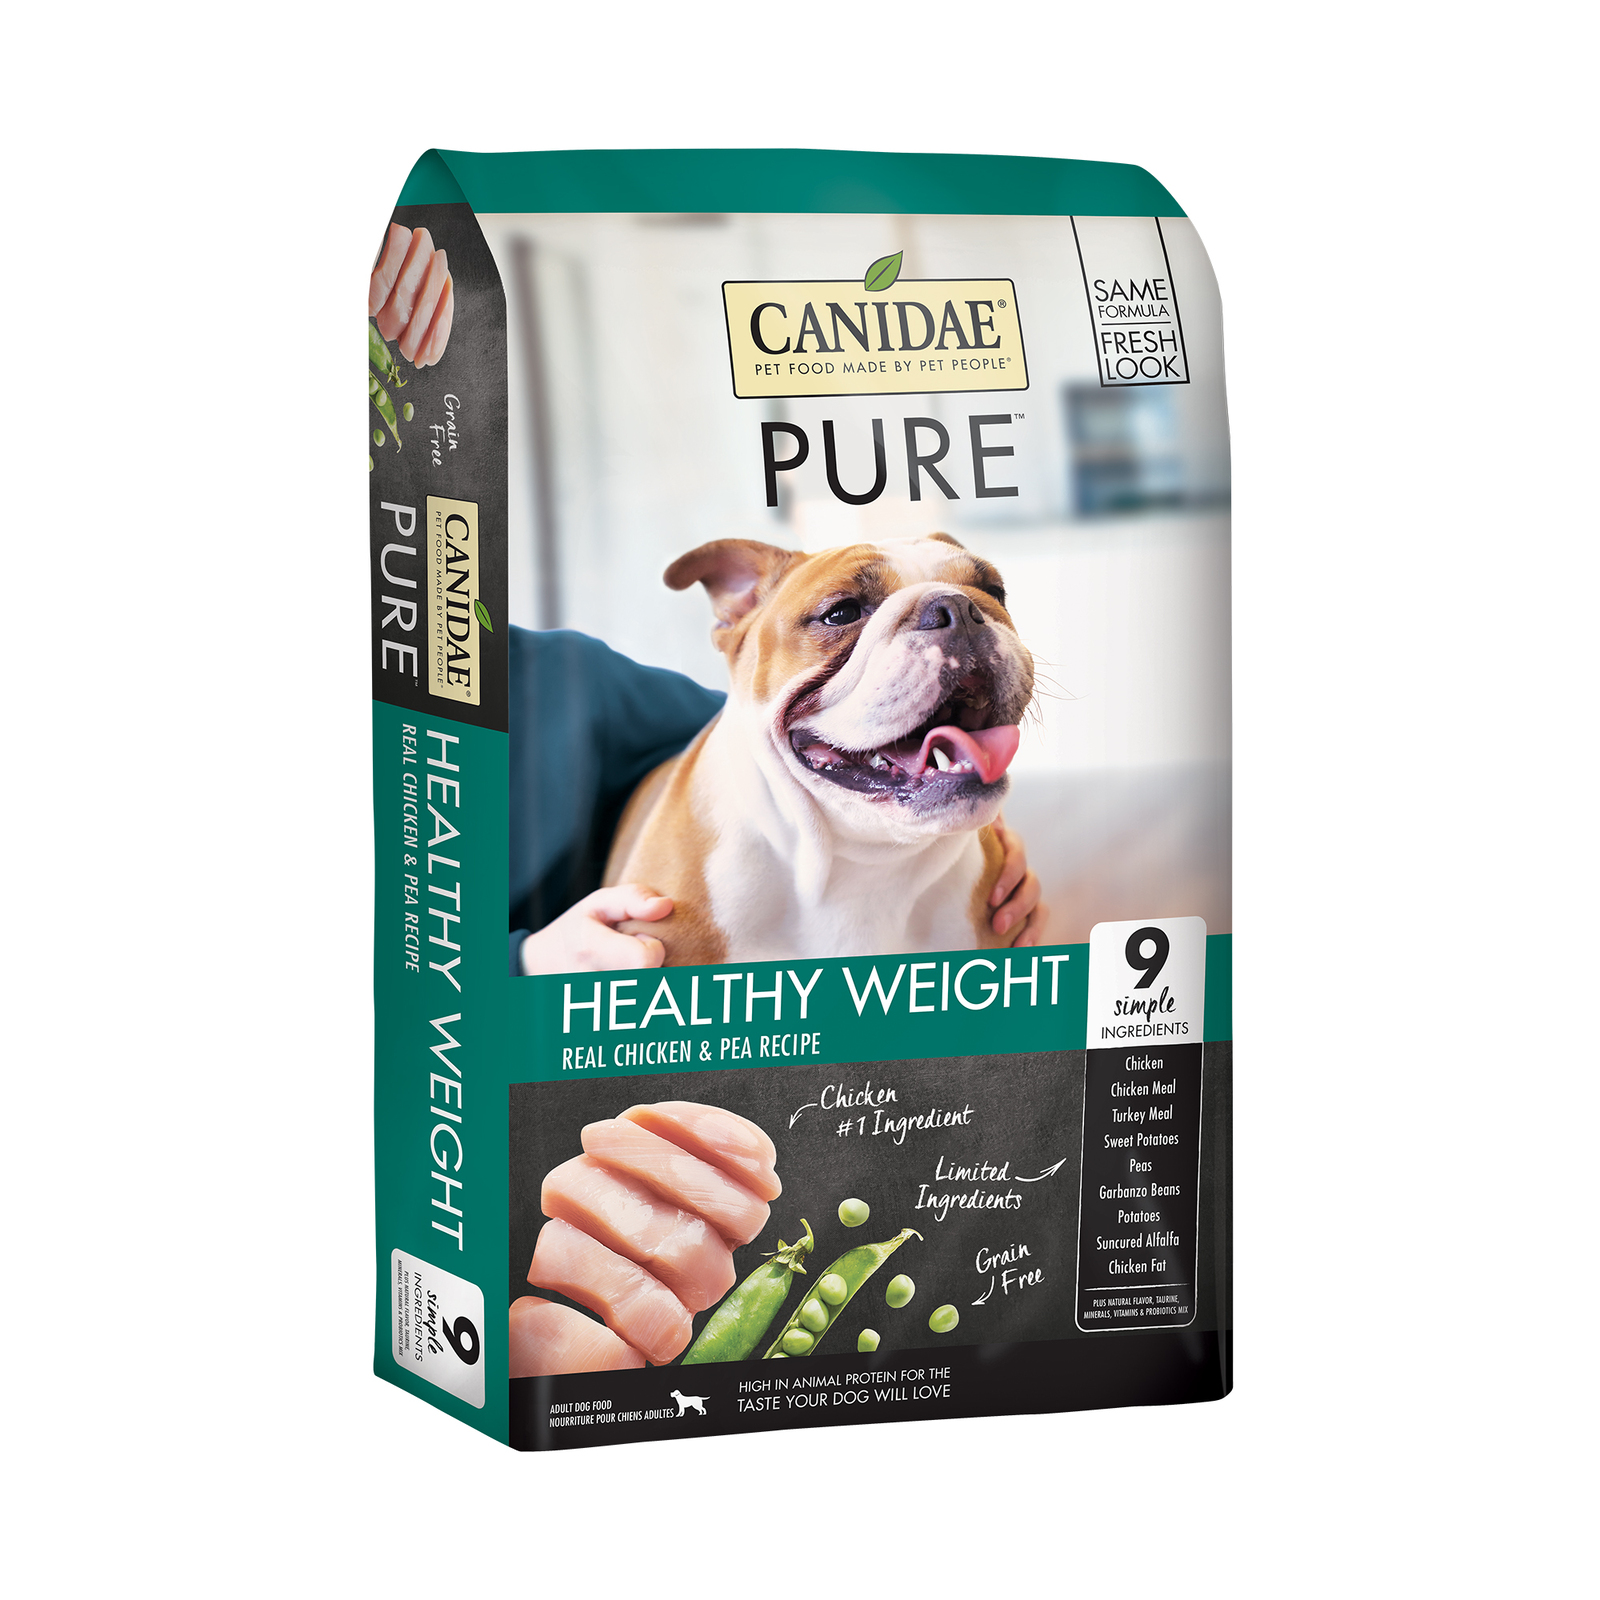 CANIDAE PURE Resolve Weight Management Formula with Fresh Chicken Dry Dog Food 5.4kg image 2